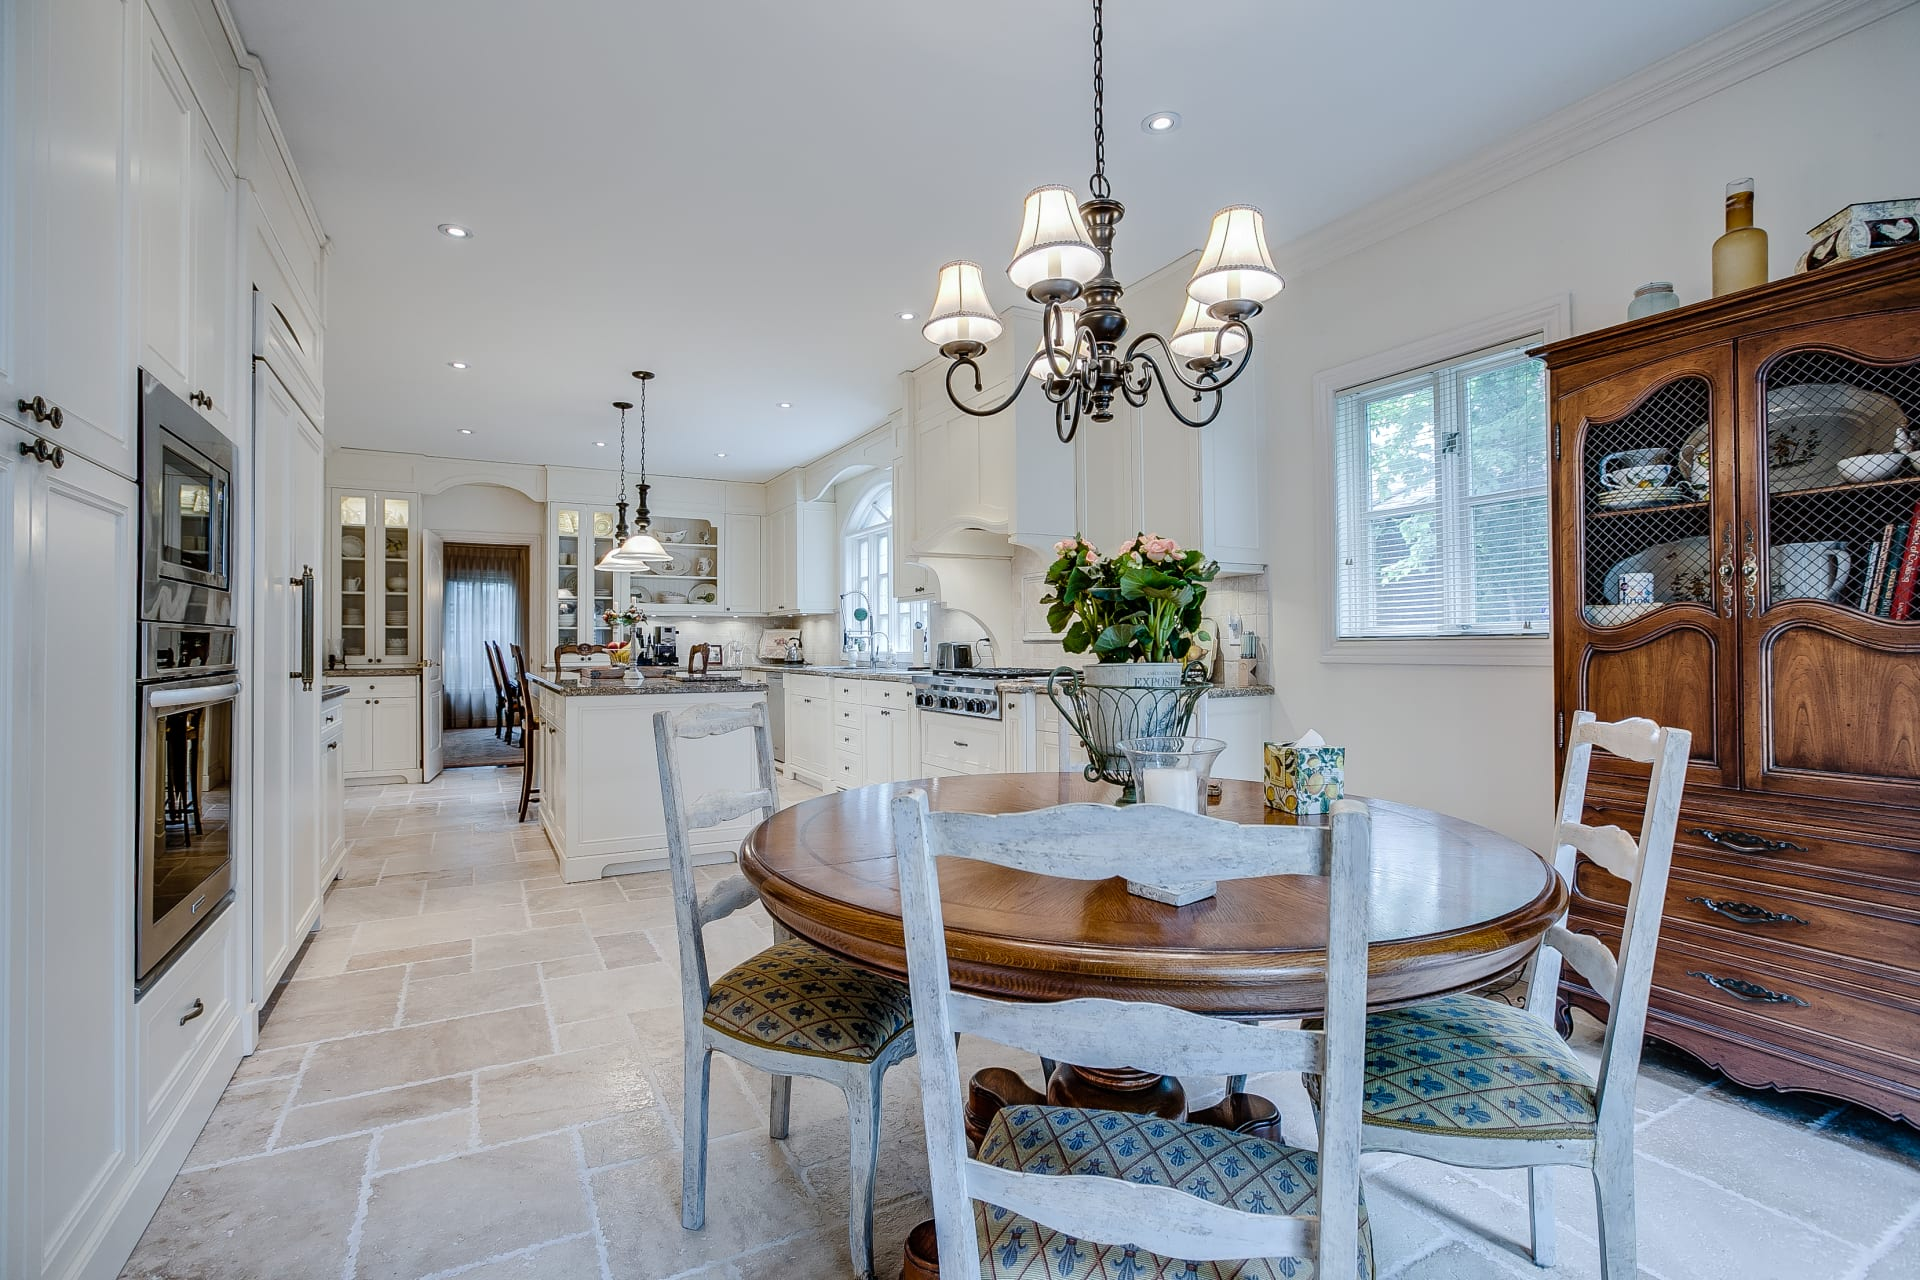 French Country Bayview Village Residence